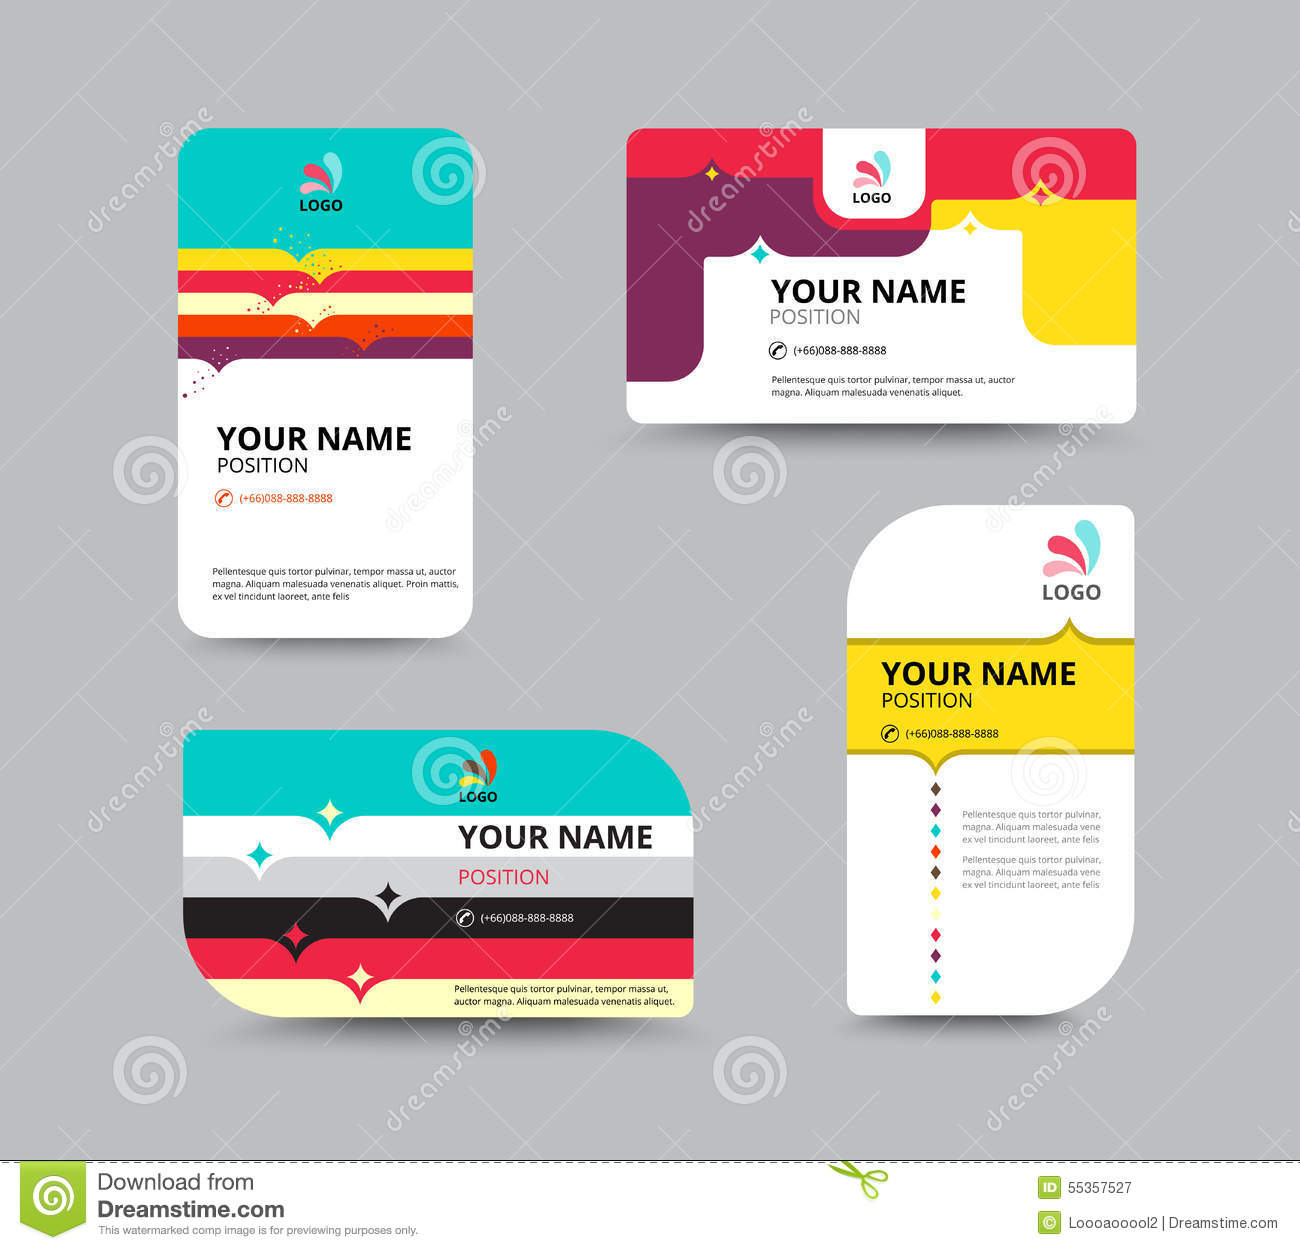 Business card template business card layout design vector illu business card template business card layout design vector illu magicingreecefo Choice Image